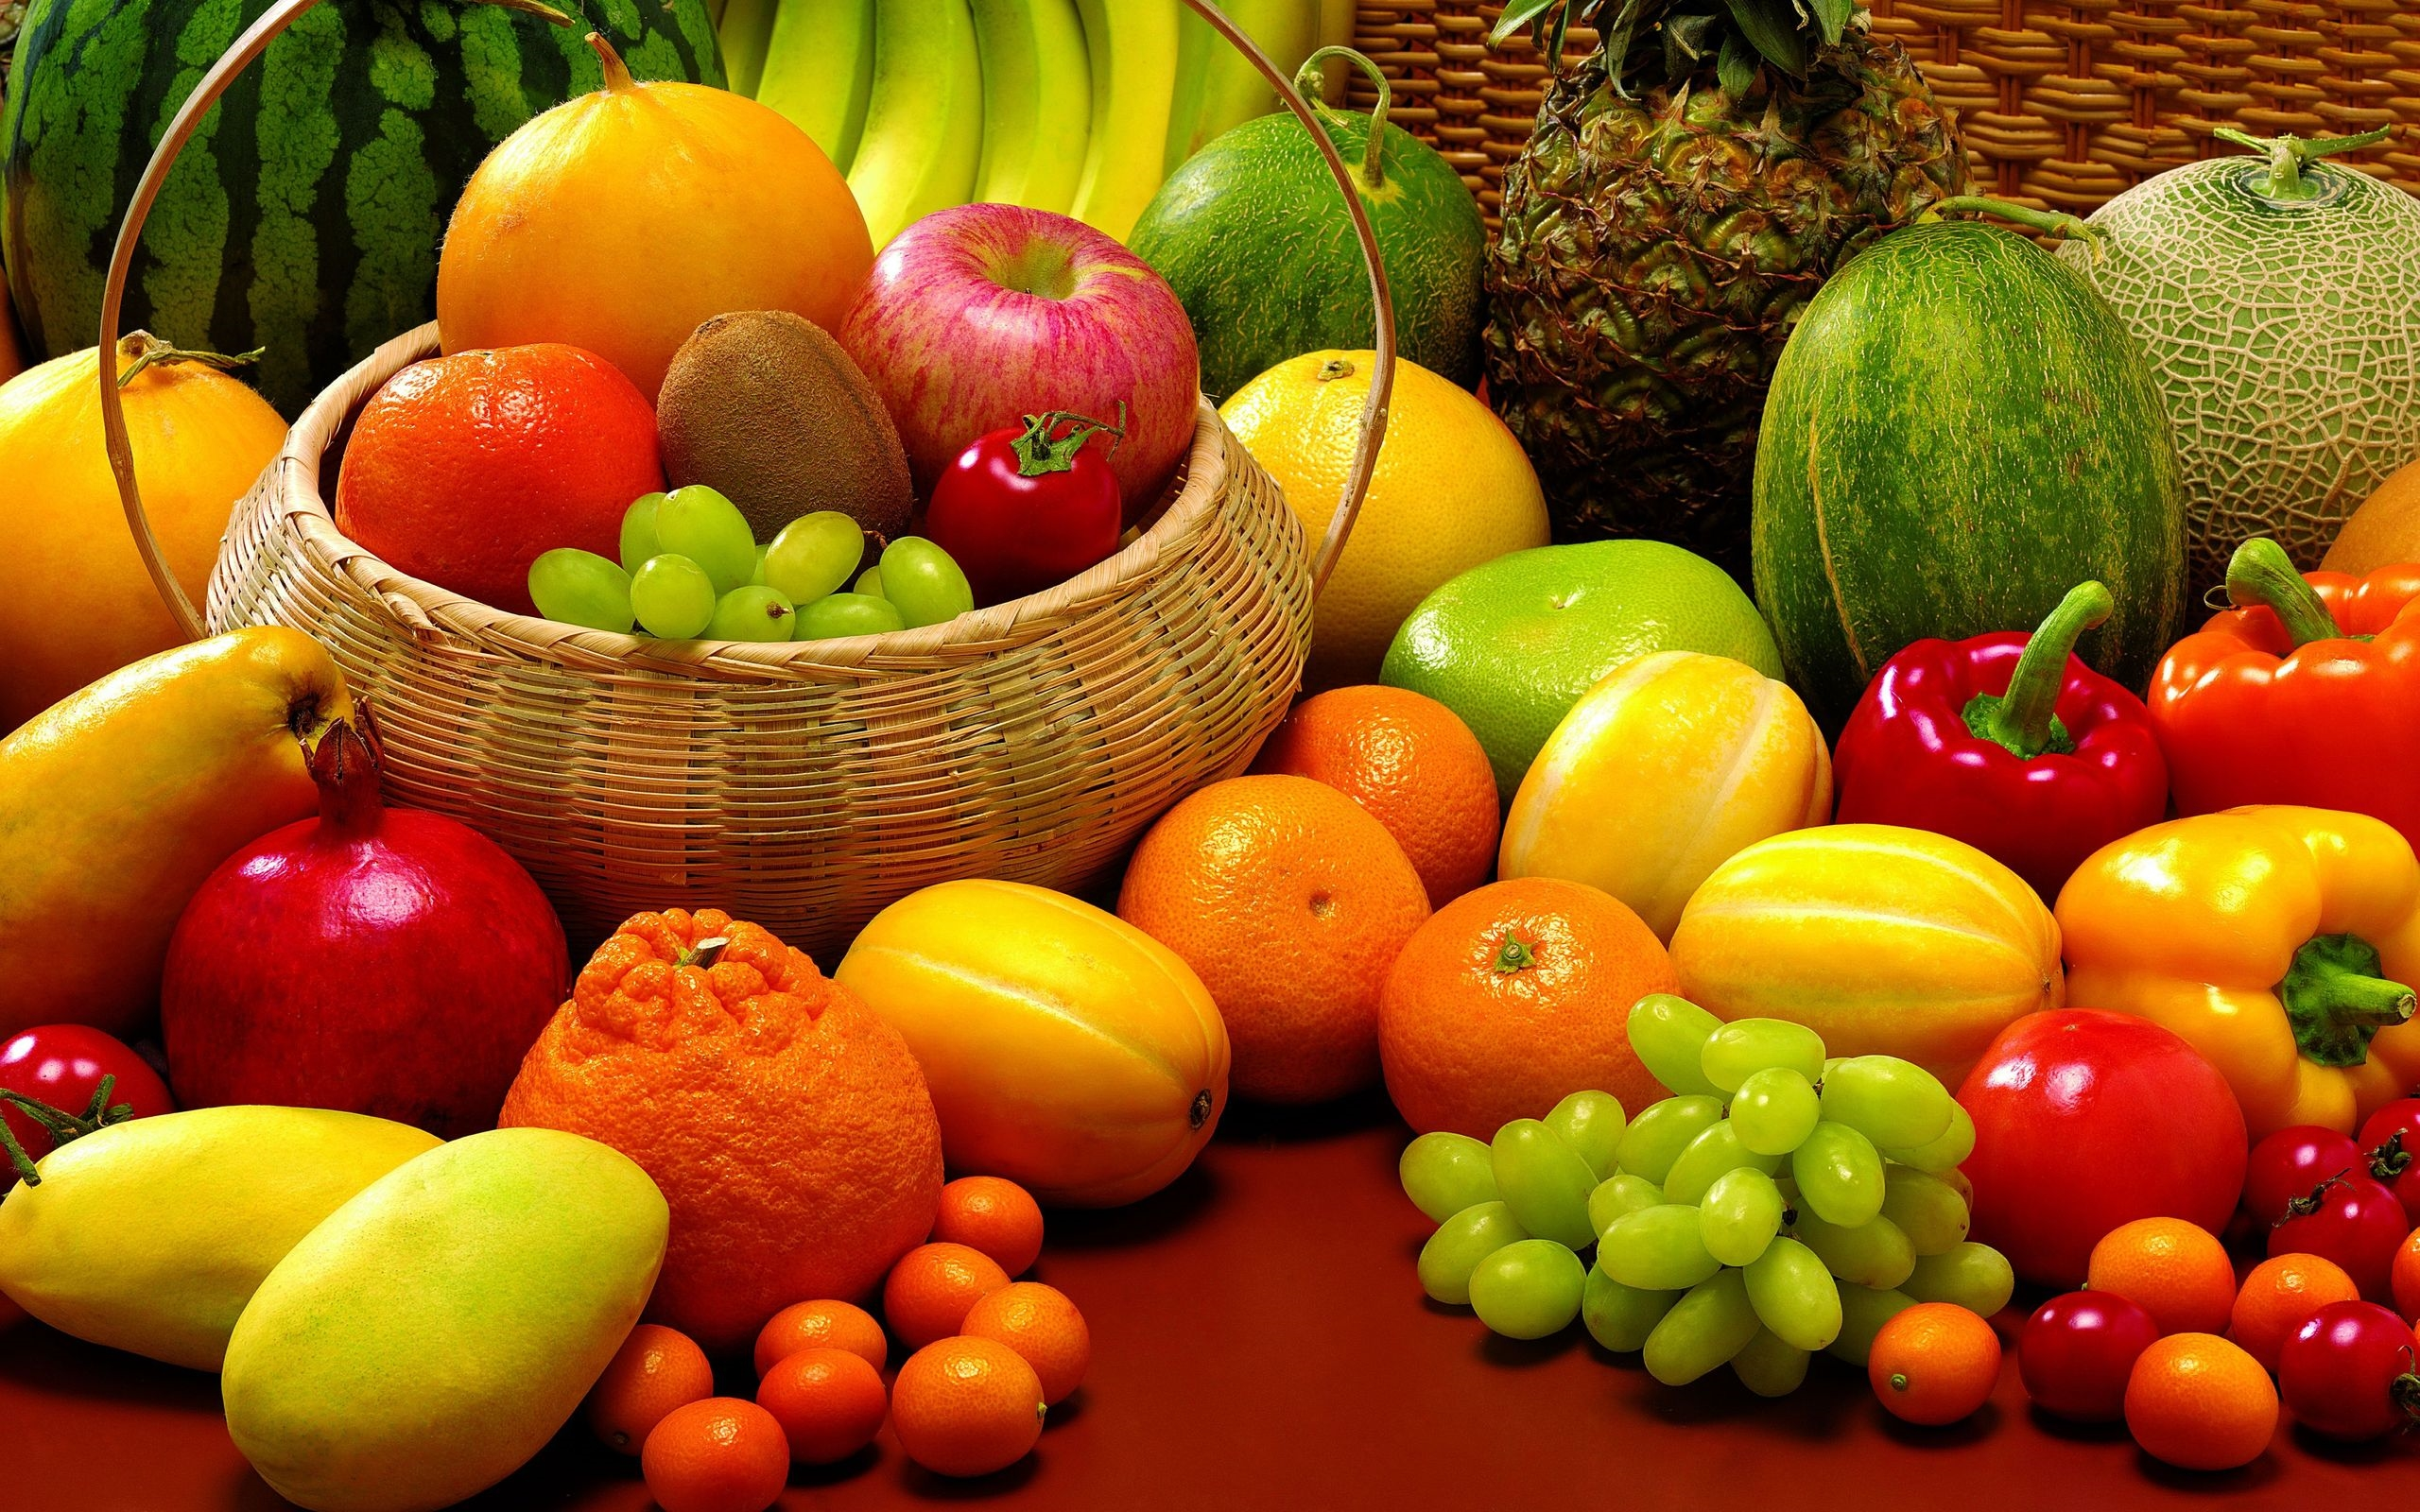 Fruits hd images - Fruits Hd Images